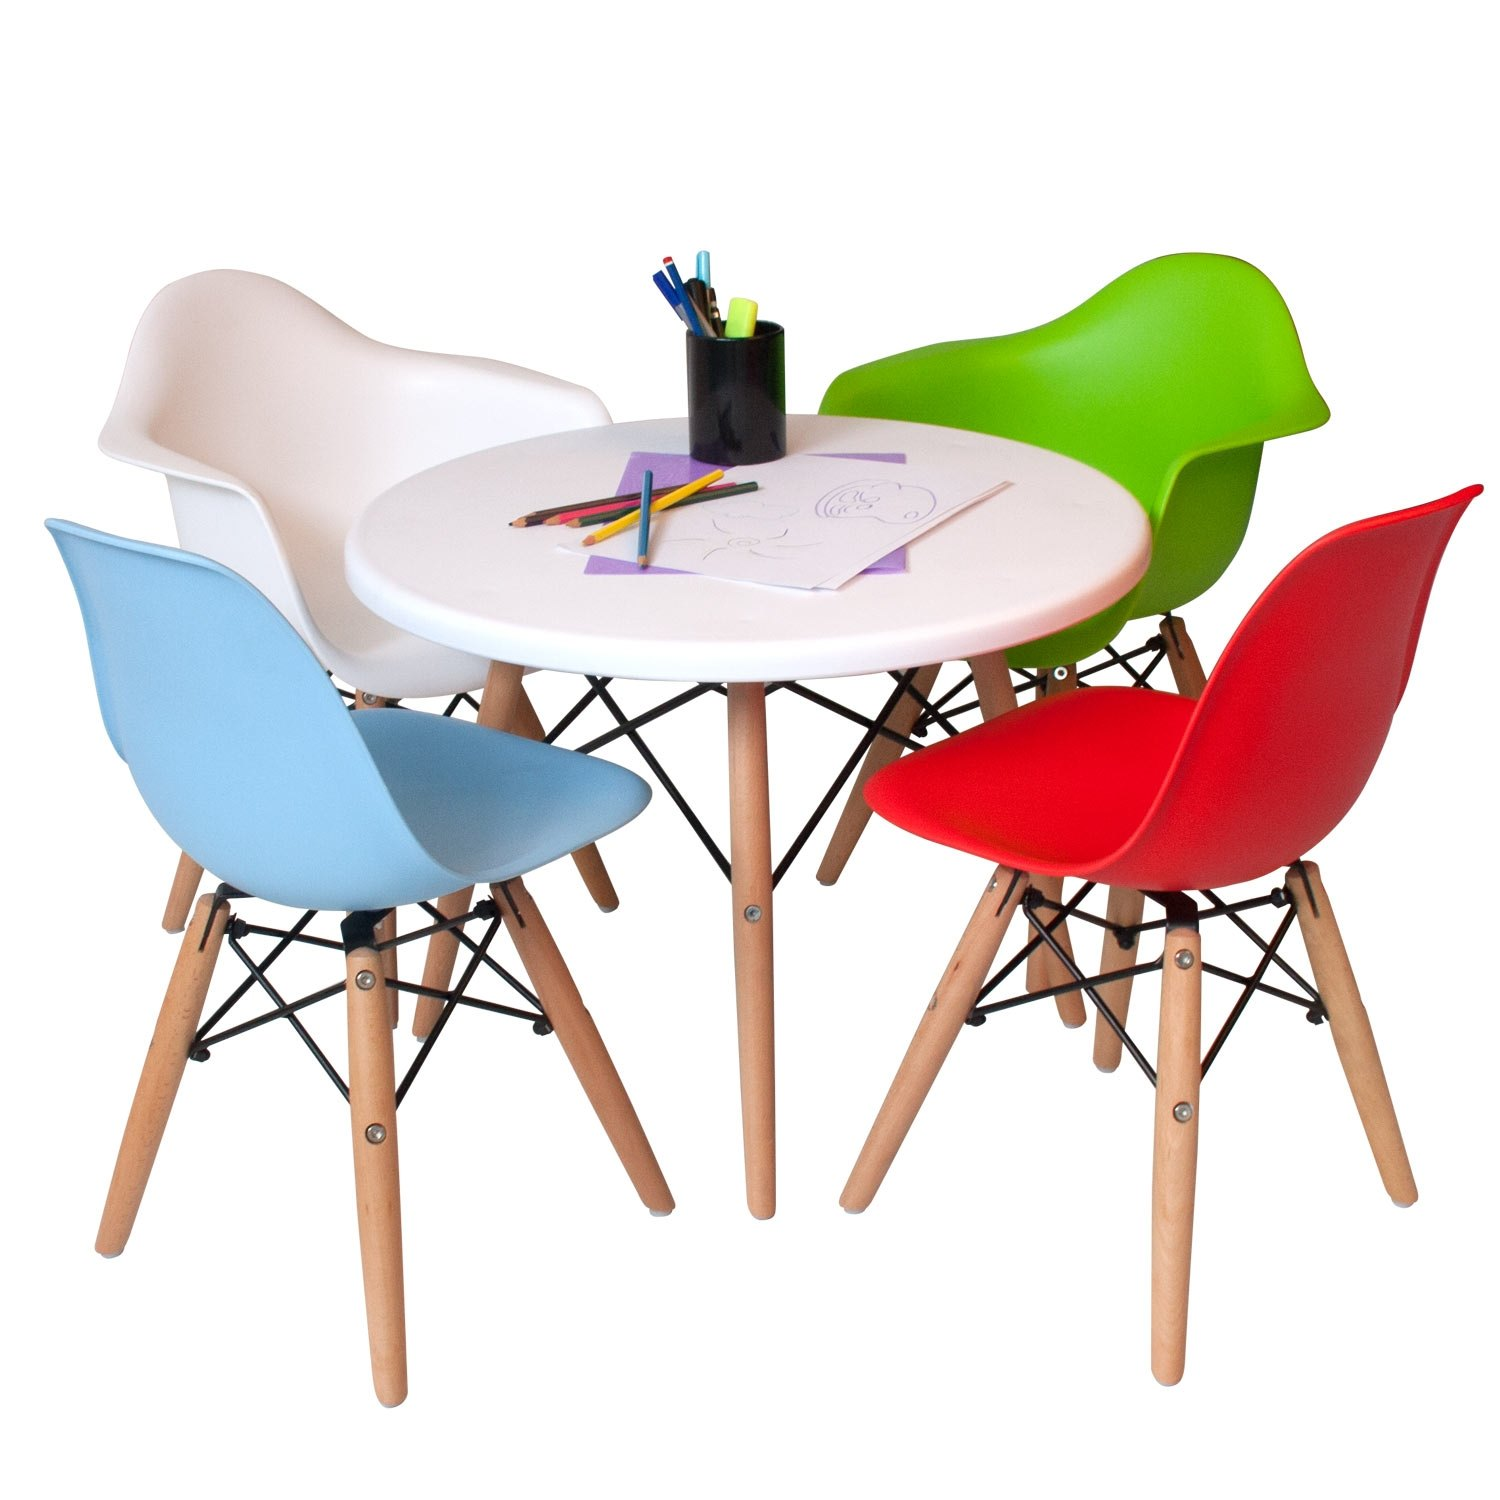 Comprare online poltrona baby tower wood econ mica in 5 for Comprare sedie